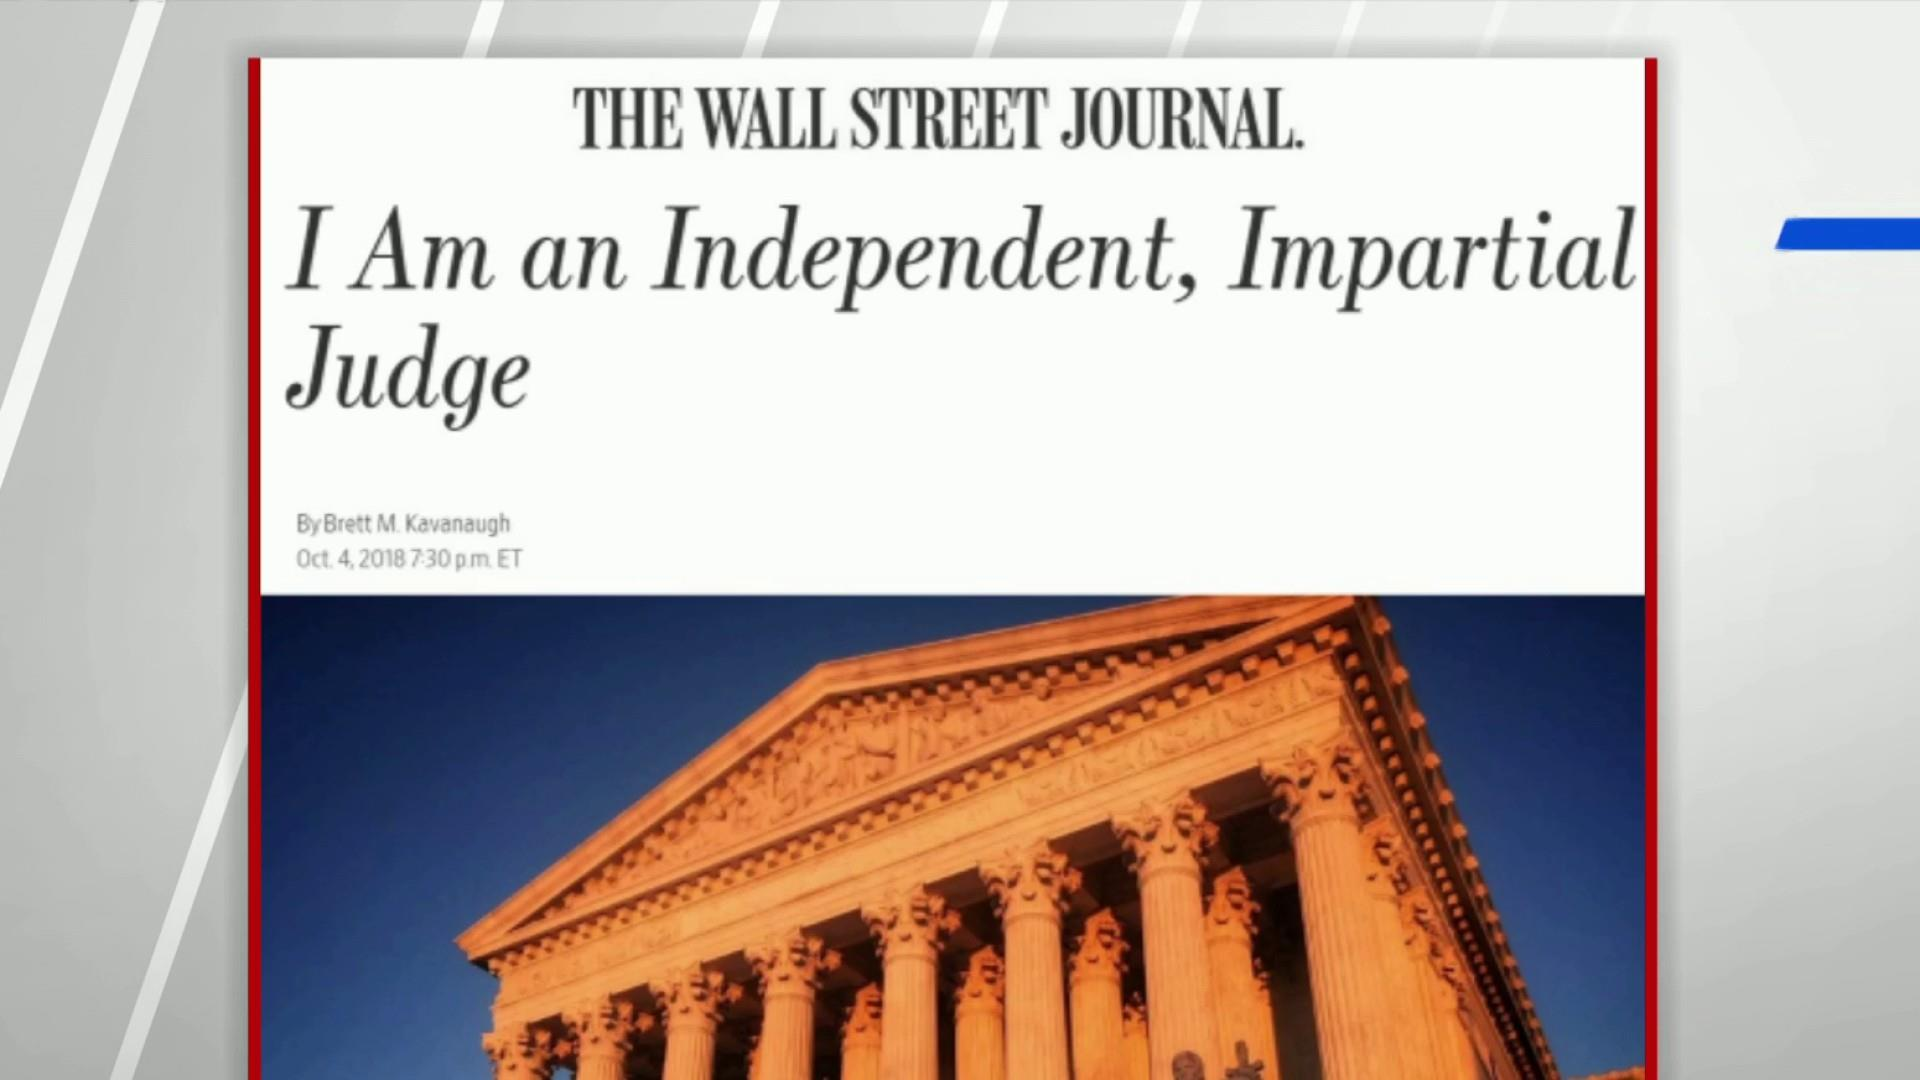 Kavanaugh in op-ed: I'm an independent, impartial judge